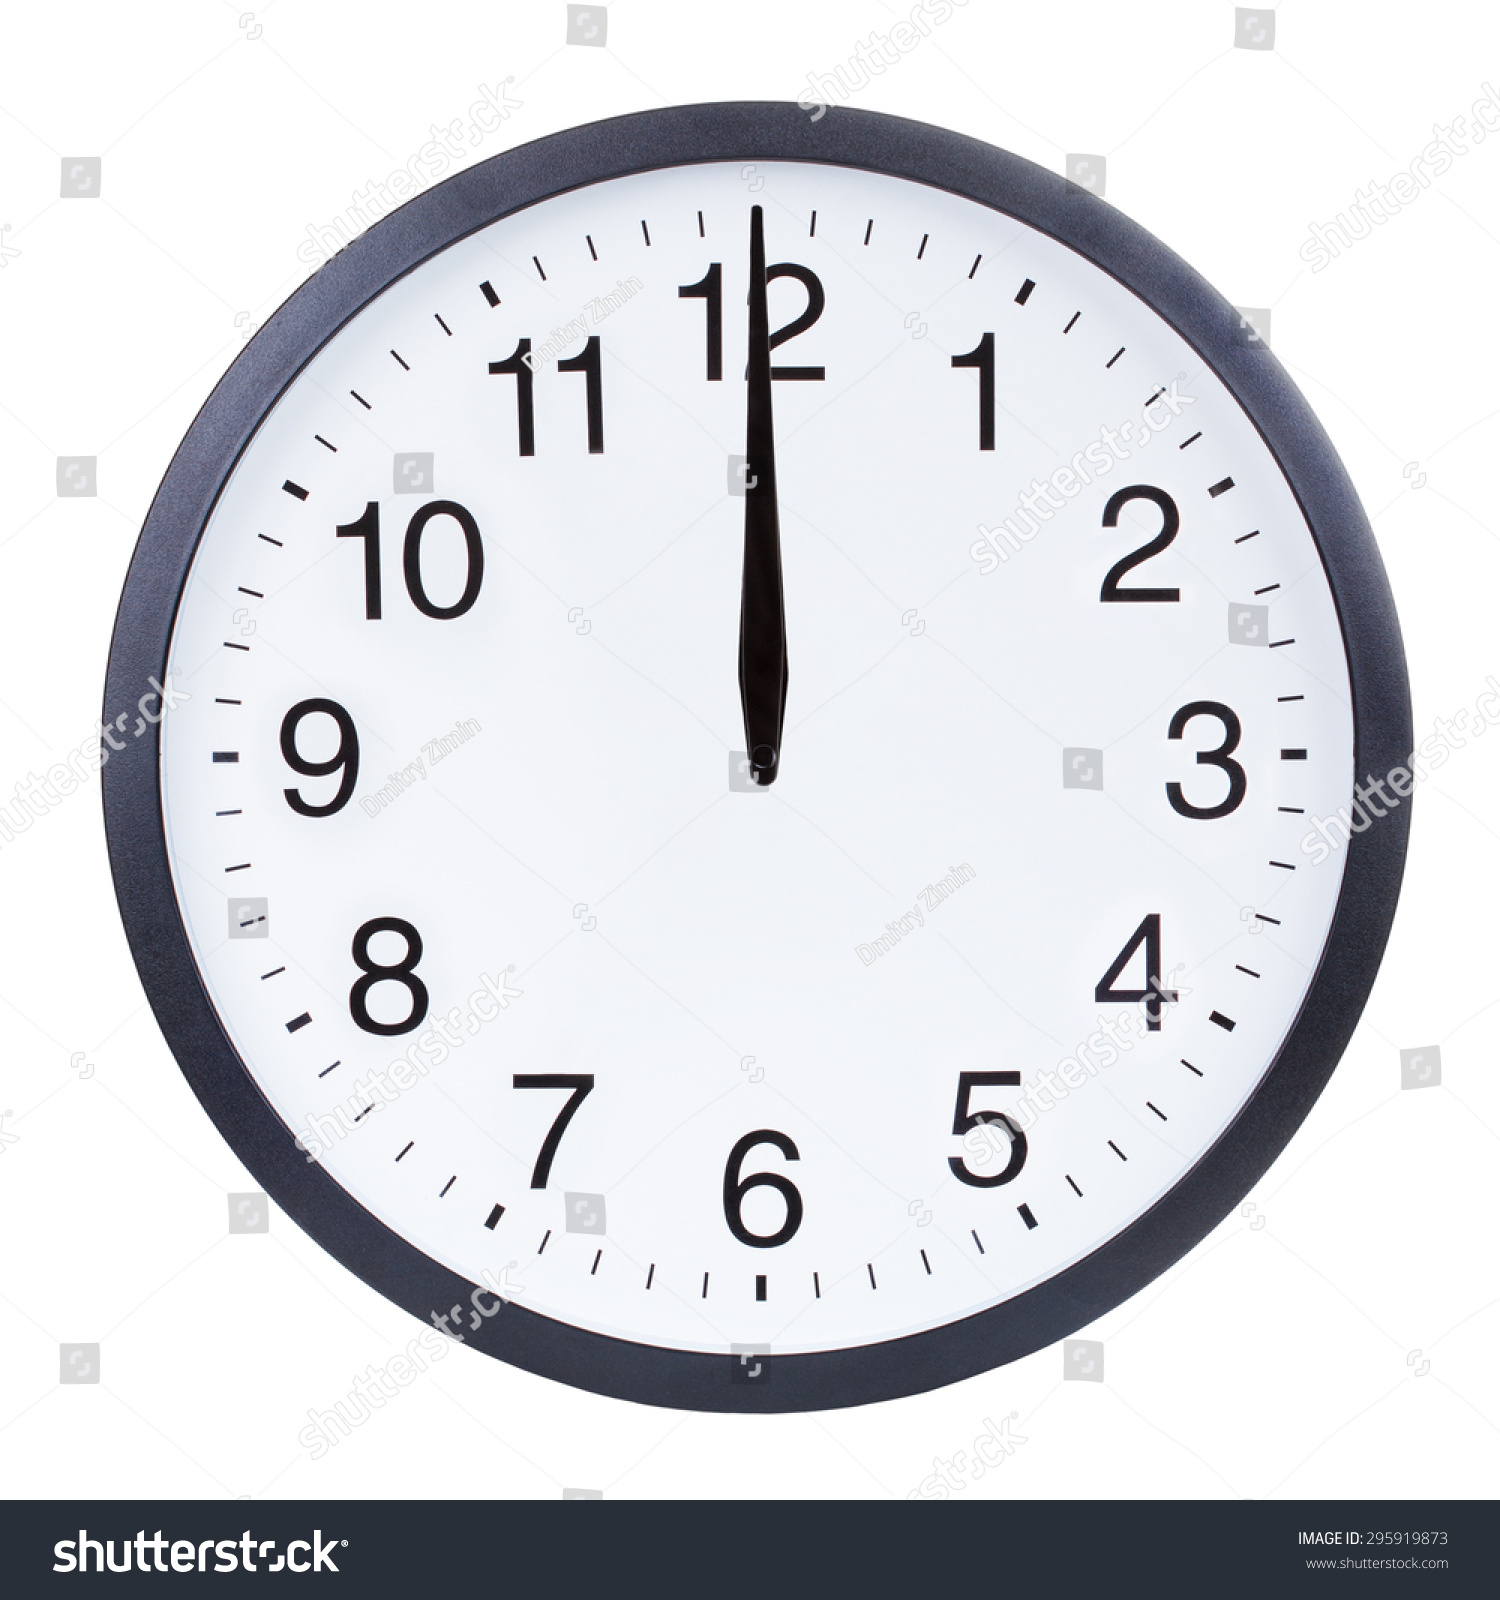 worksheet Blank Analog Clock Face blank clock face hour minute second stock photo 295919873 with and hands isolated on white background just